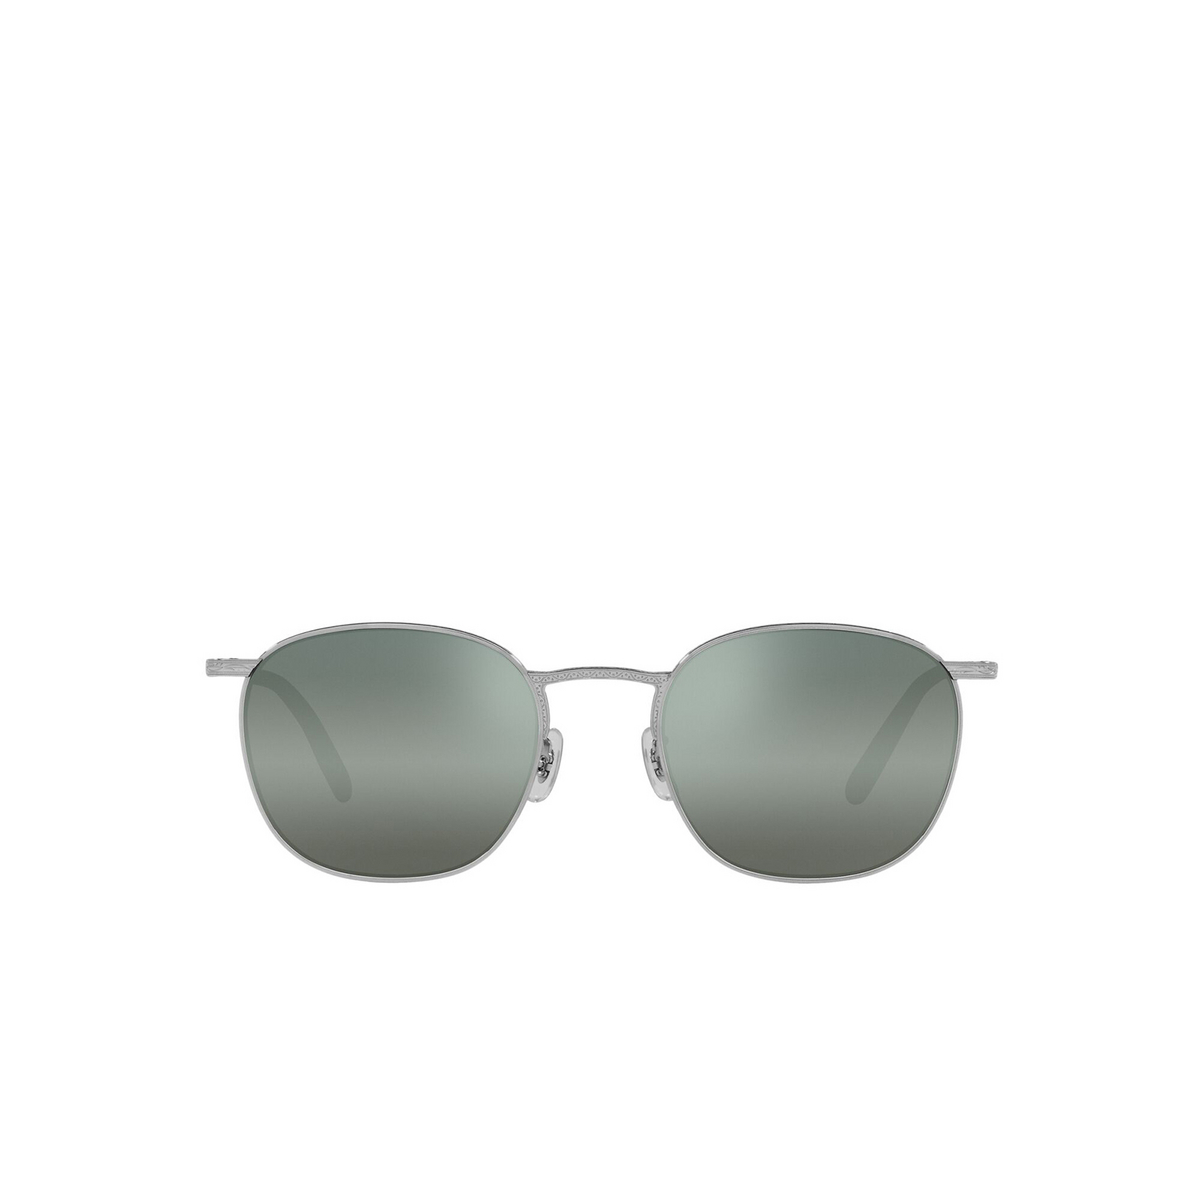 Oliver Peoples® Square Sunglasses: Goldsen Sun OV1285ST color Silver 503641 - front view.